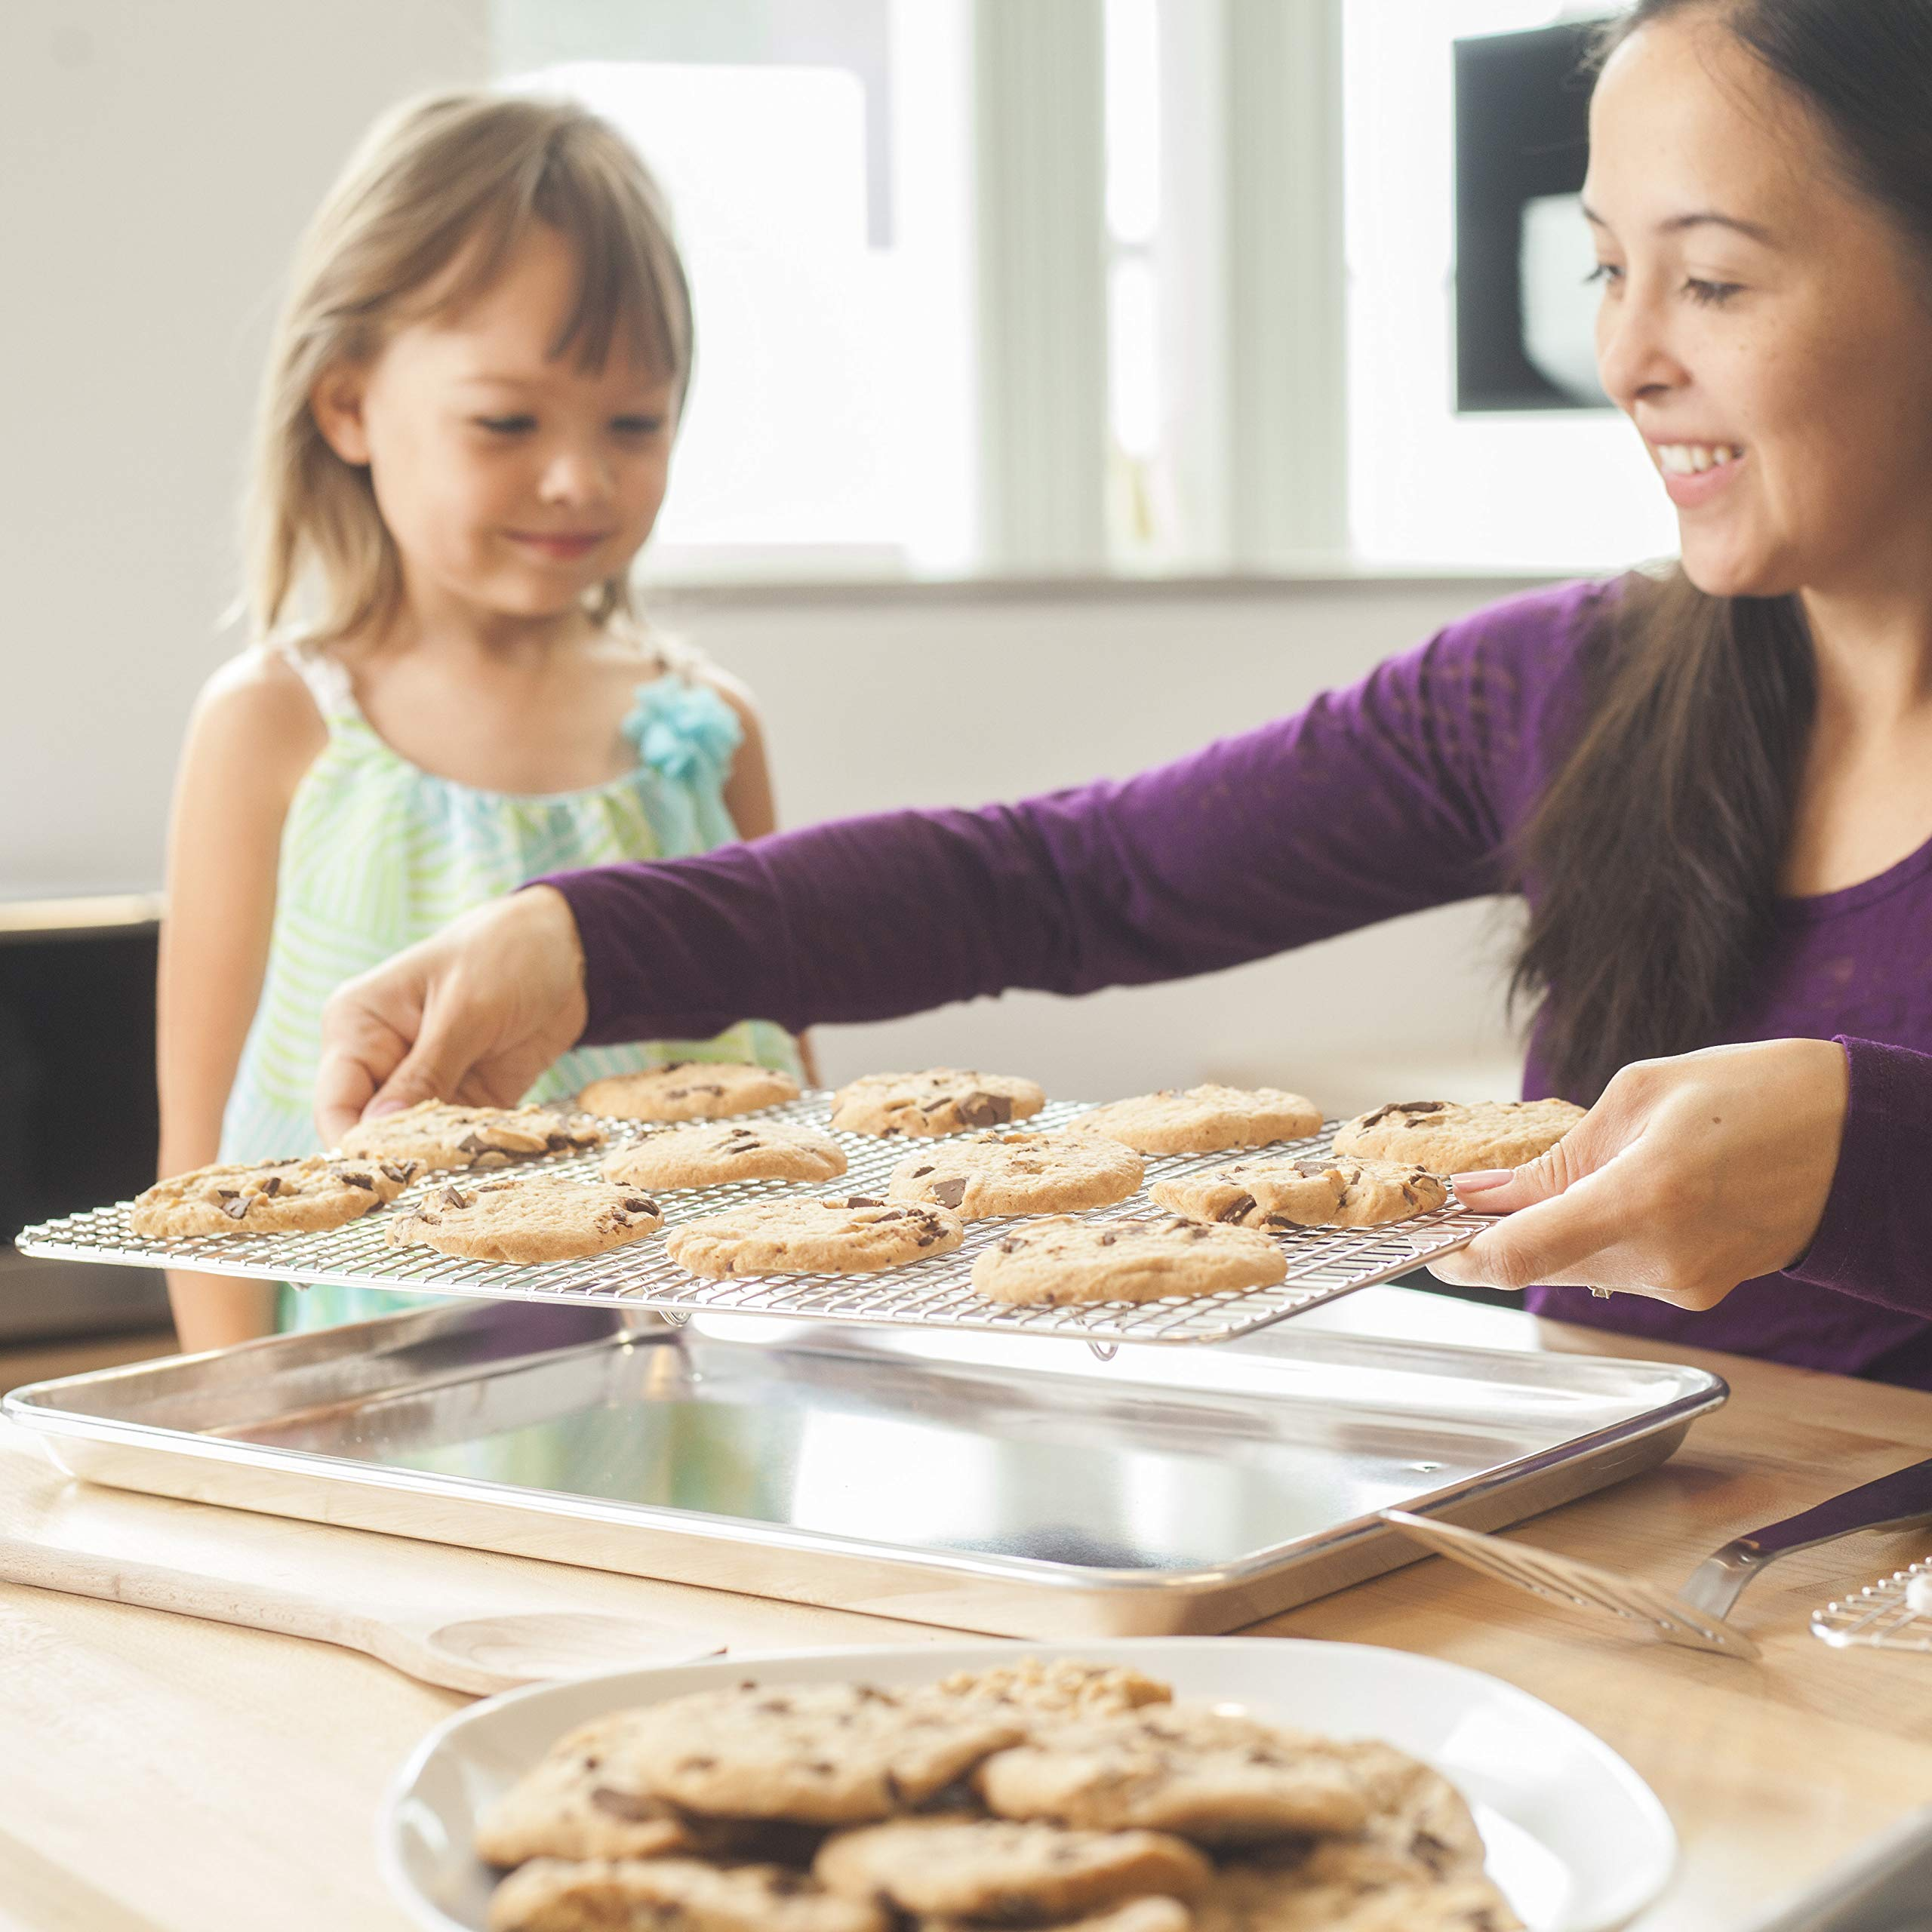 KITCHENATICS Baking Sheet with Cooling Rack: Half Aluminum Cookie Pan Tray with Stainless Steel Wire and Roasting Rack - 13.1'' x 17.9'', Heavy Duty Commercial Quality by KITCHENATICS (Image #3)